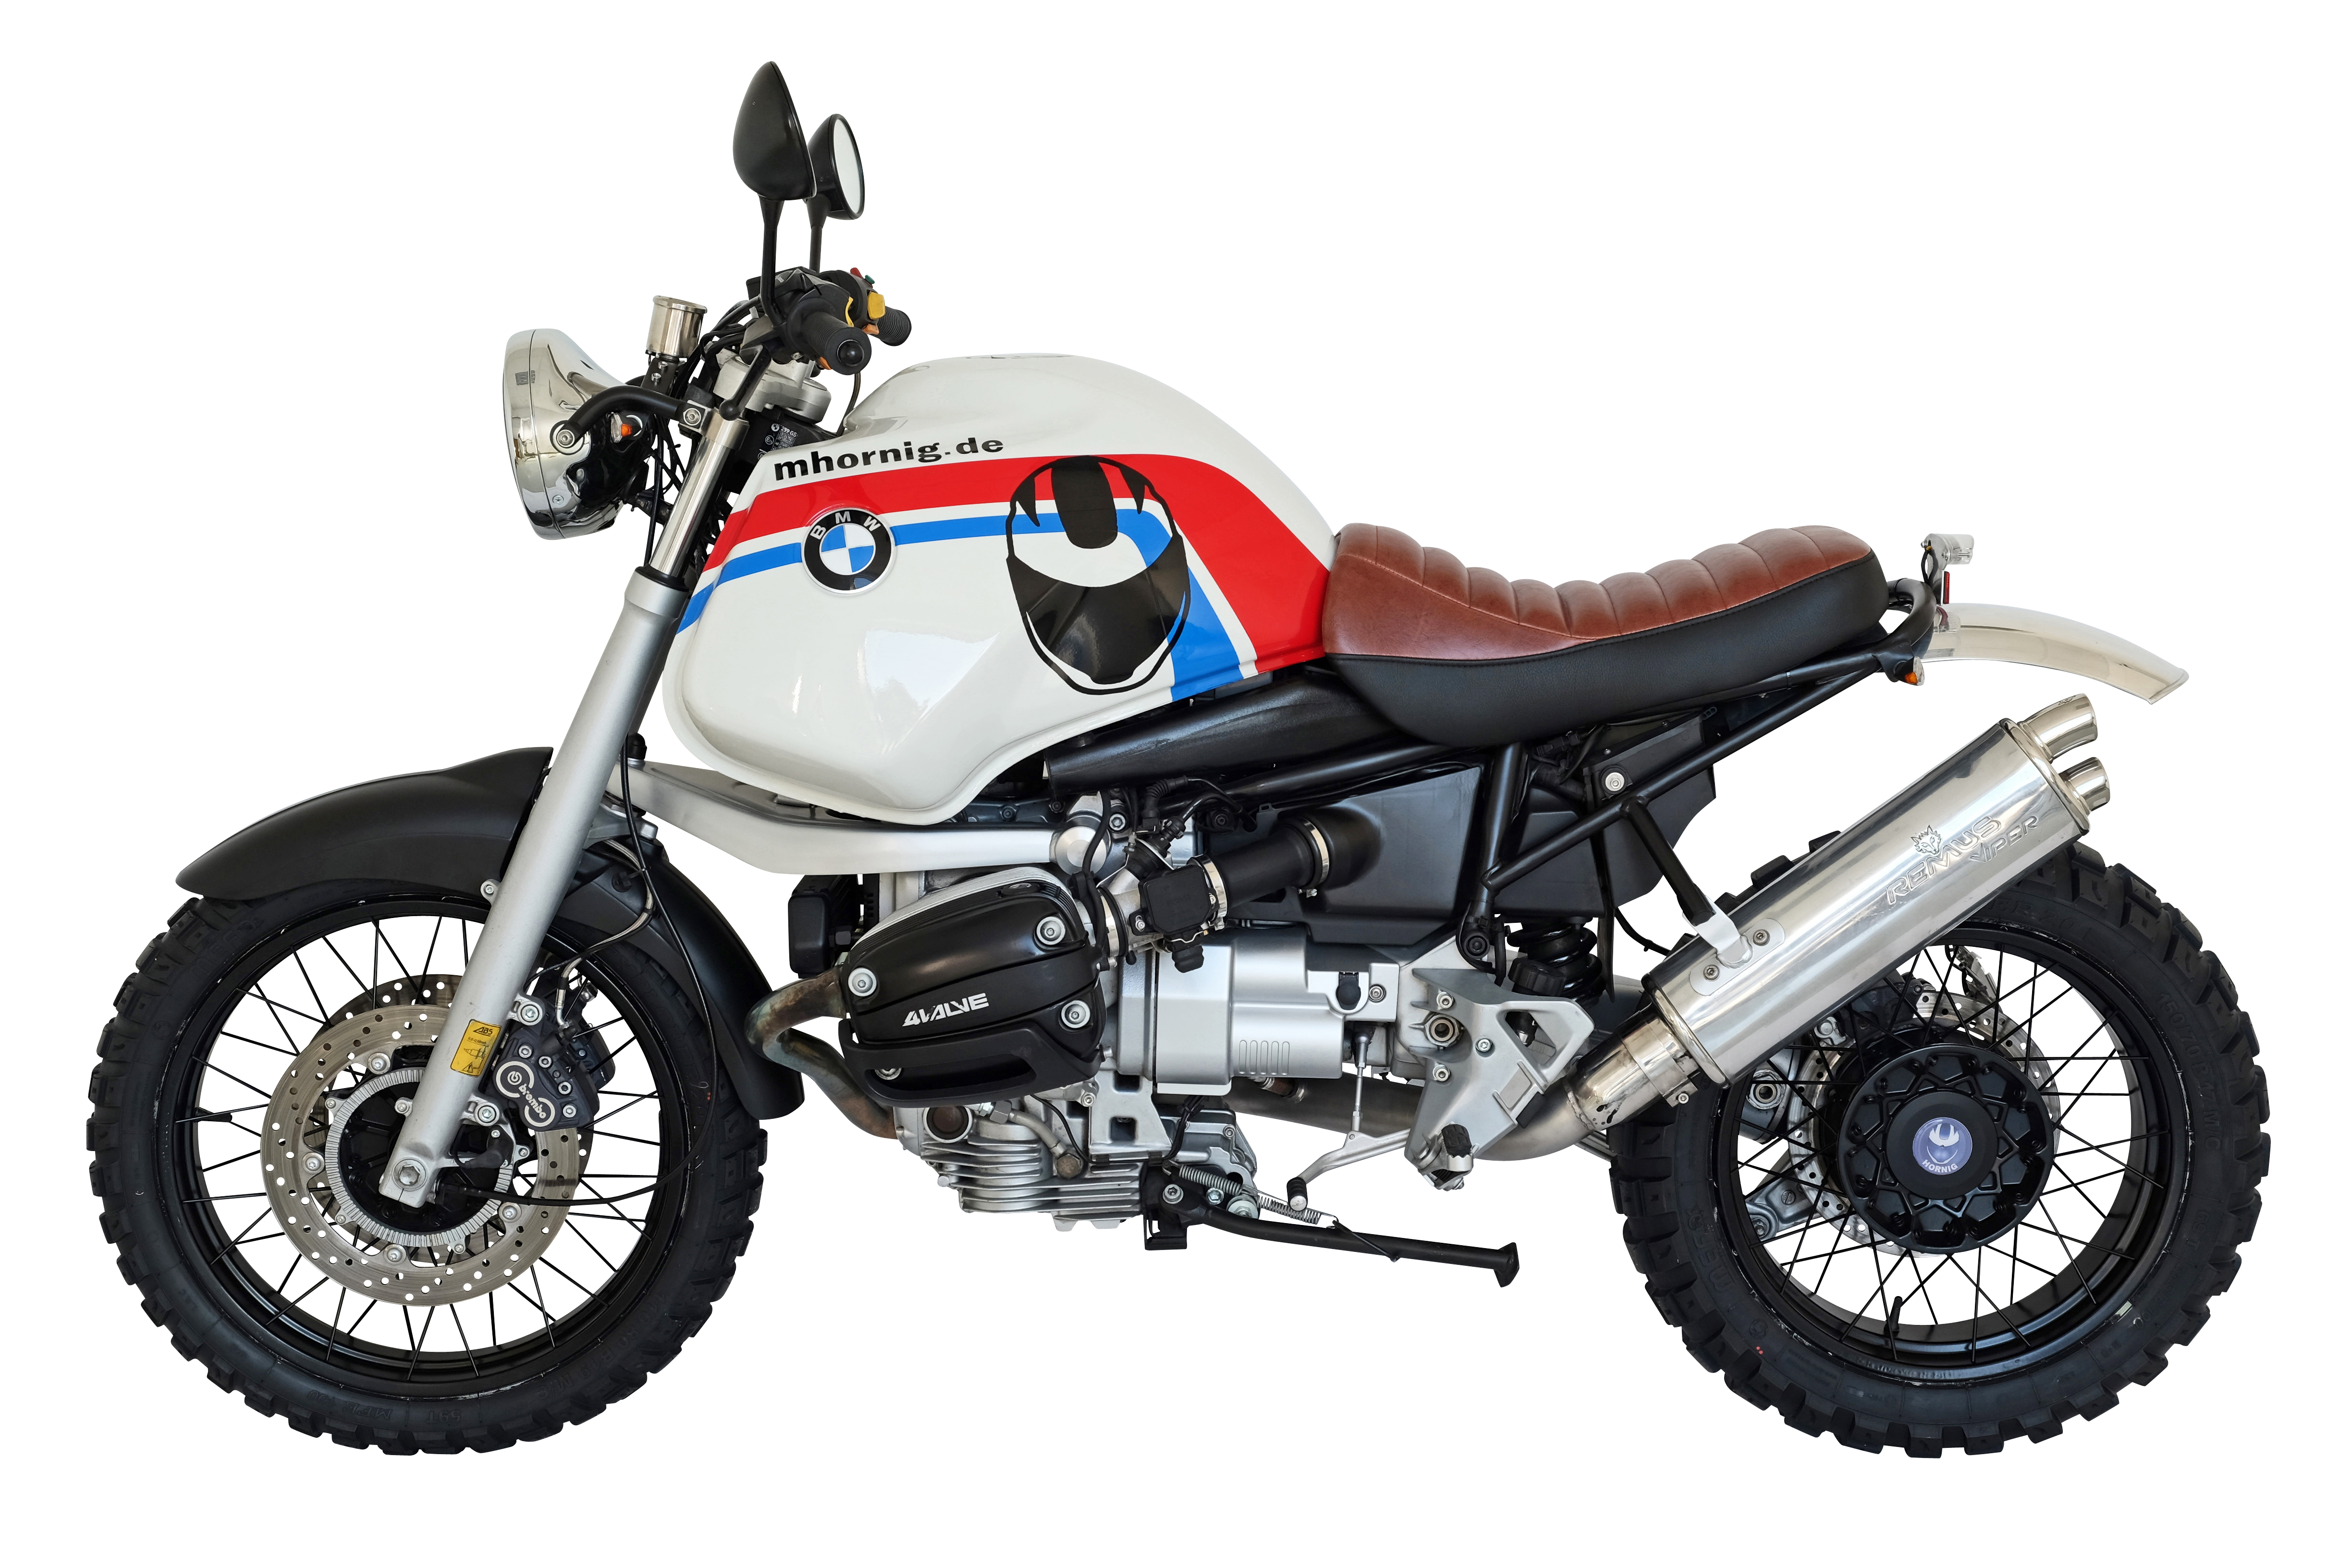 Bmw R1100gs Scrambler Conversion Based On Our R1100r Scrambler